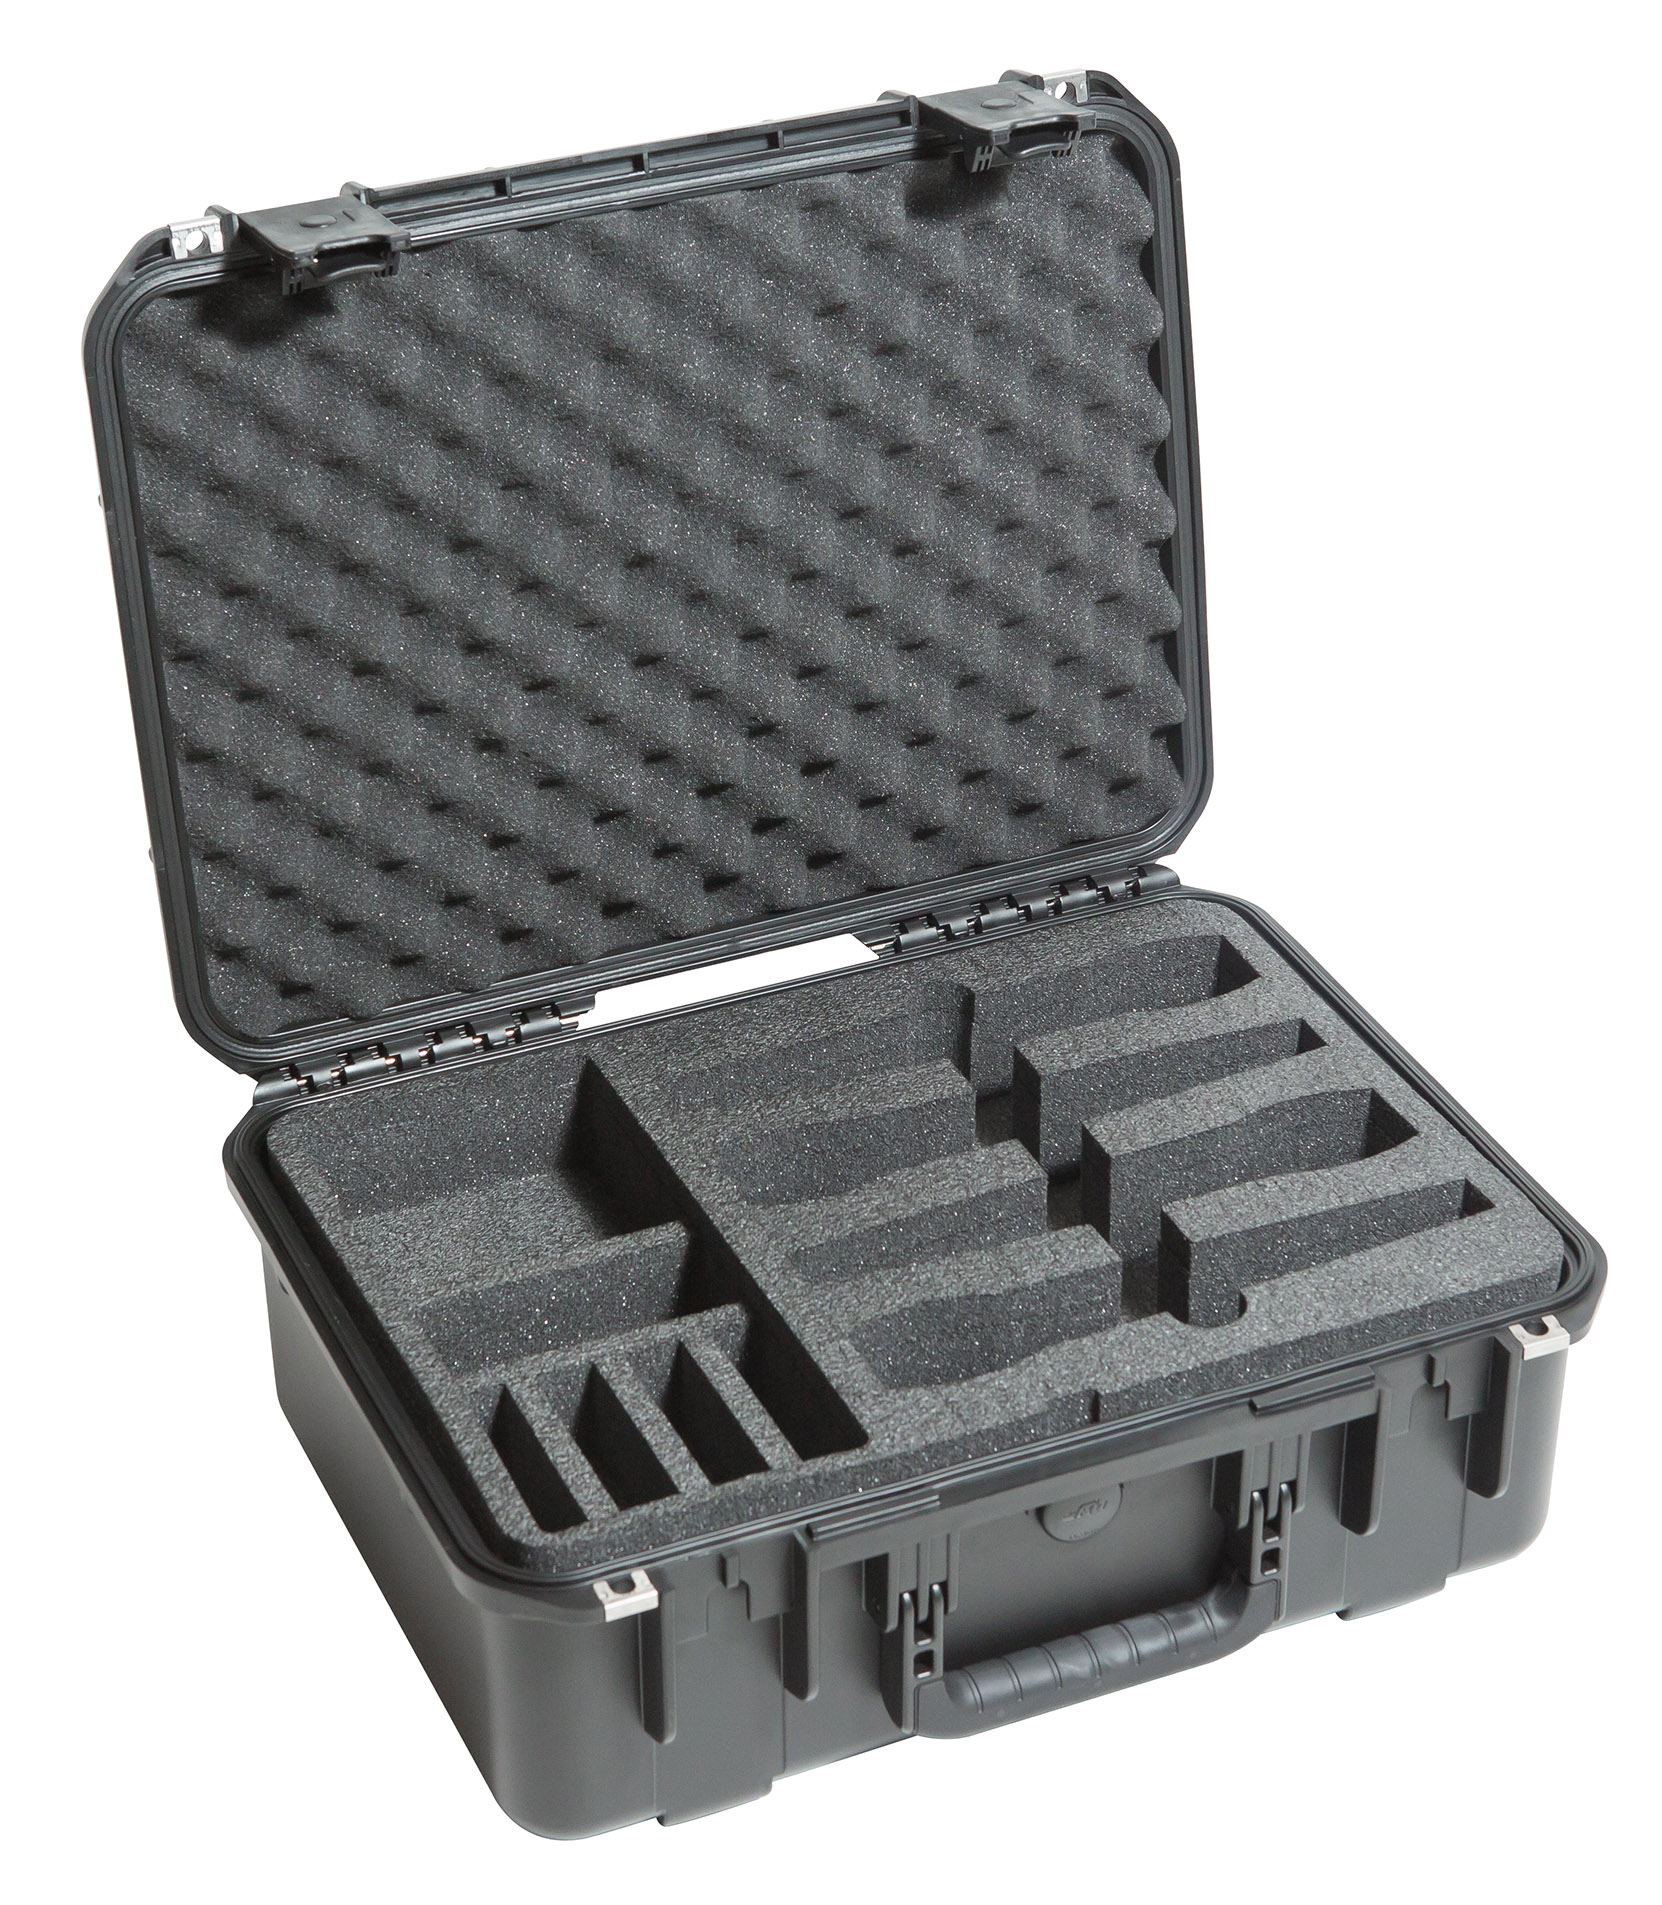 skb - 3i 1813 7WMCiSeries Injection Molded Case for - Melody House